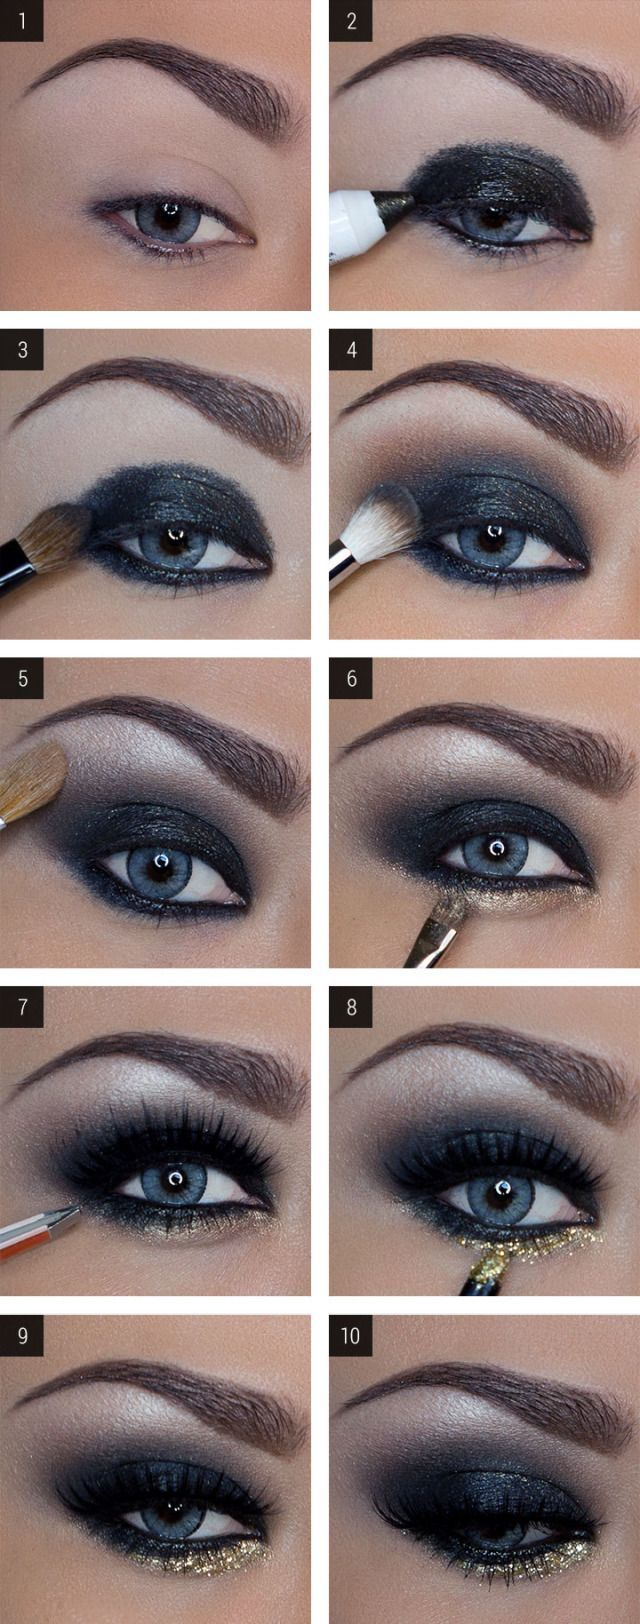 Eye Makeup For Dark Skin Simple Party Makeup Tips For Black Women To Look Gorgeous